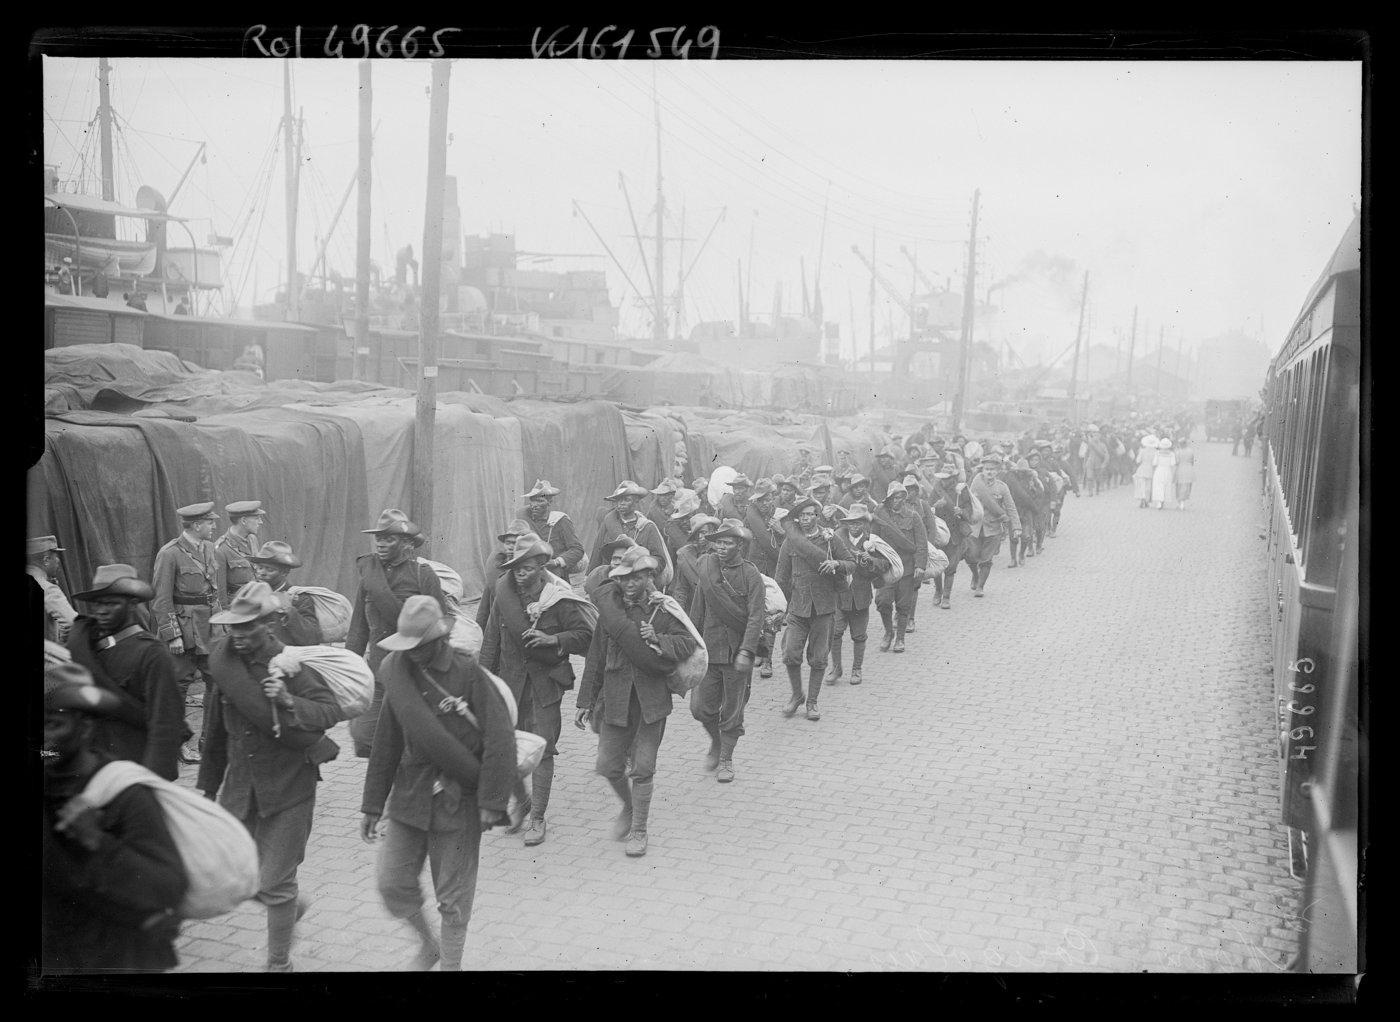 Photograph from 1917 showing the landing of colonial troops from the Congo.